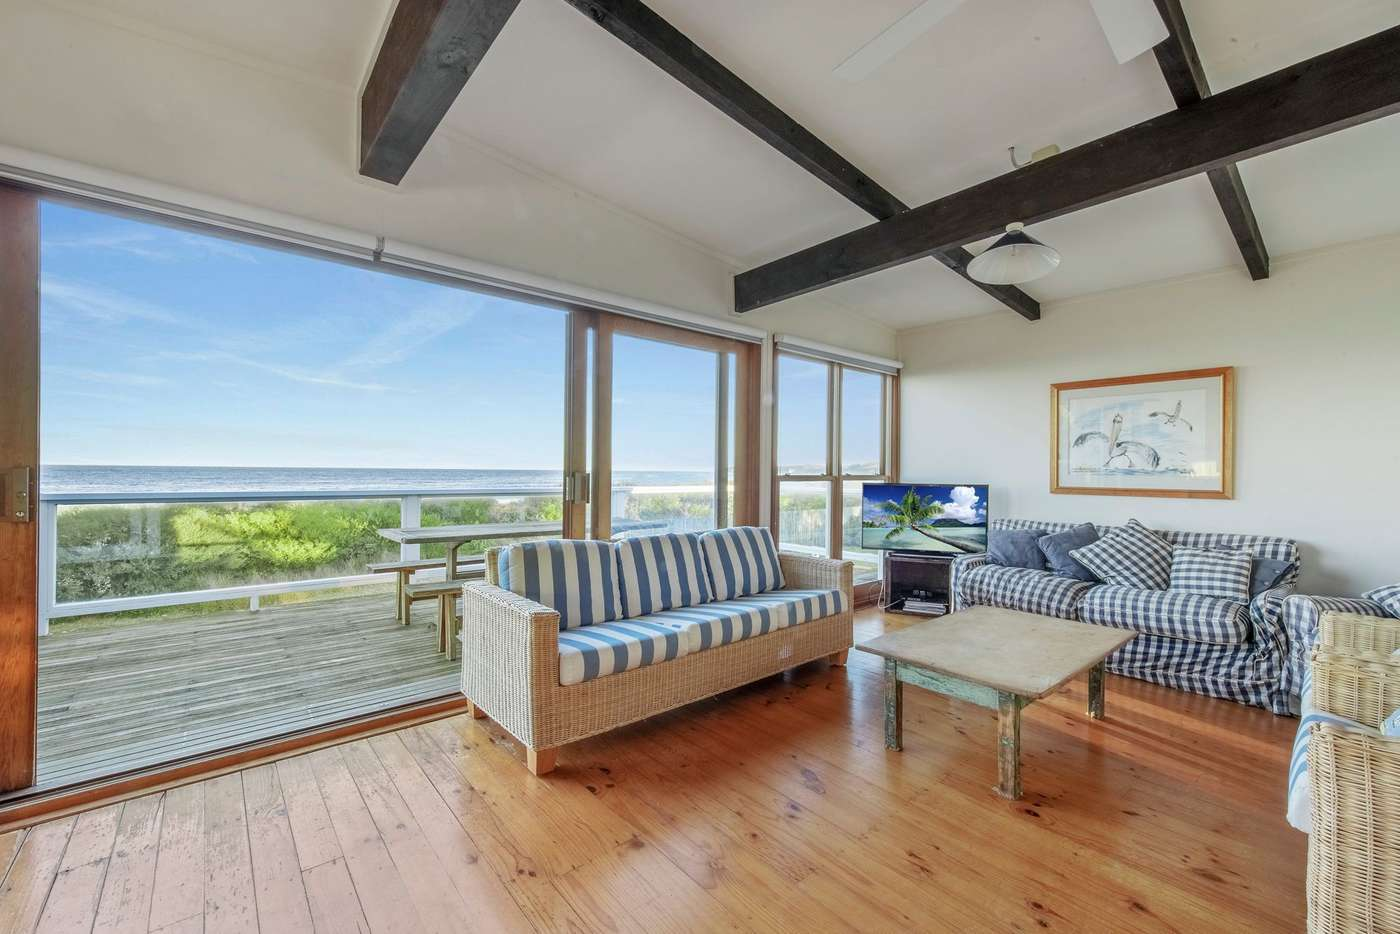 Sixth view of Homely house listing, 84 Mitchell Parade, Mollymook NSW 2539